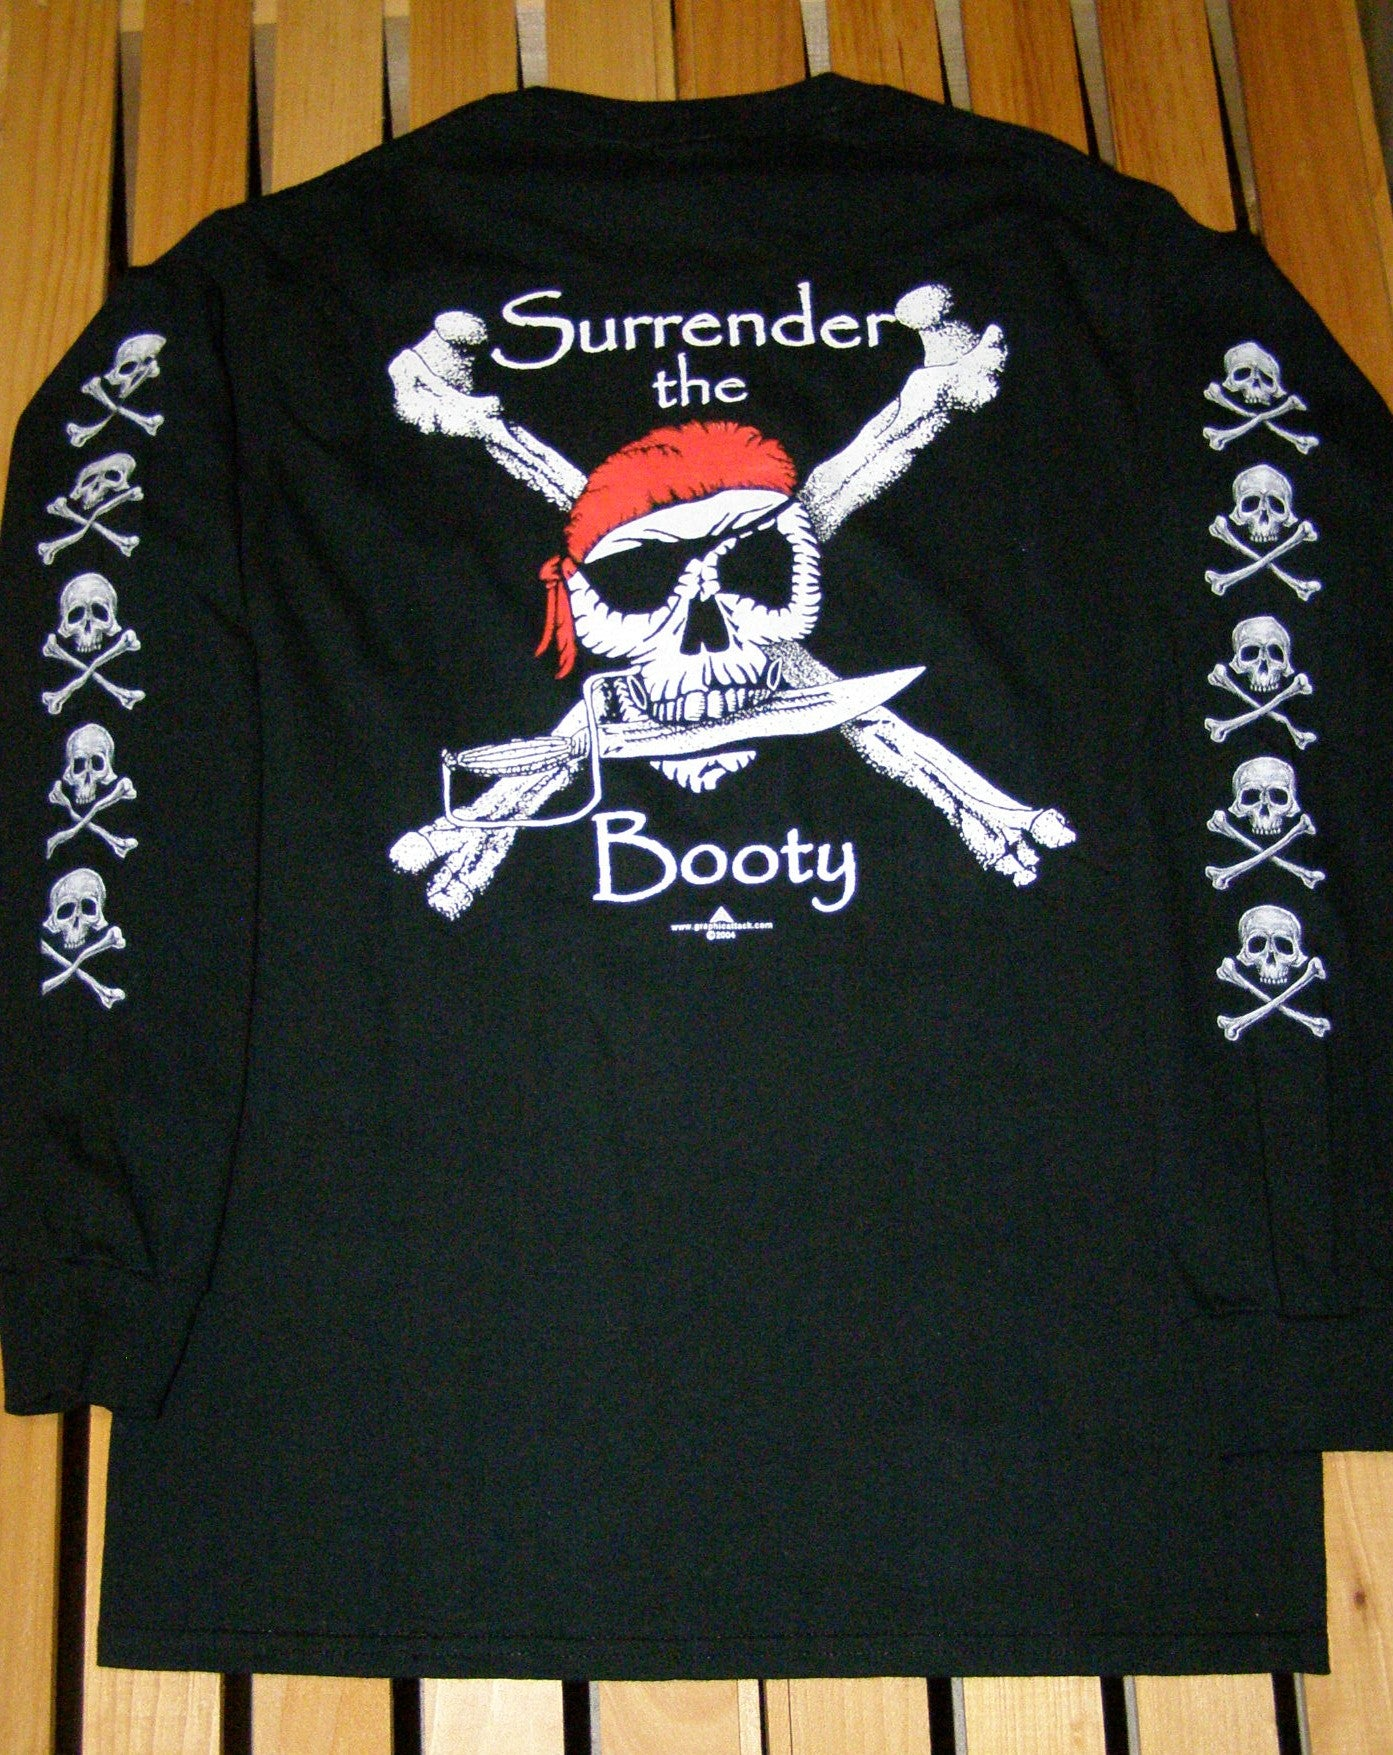 Pirate T-Shirt - Surrender the Booty LS